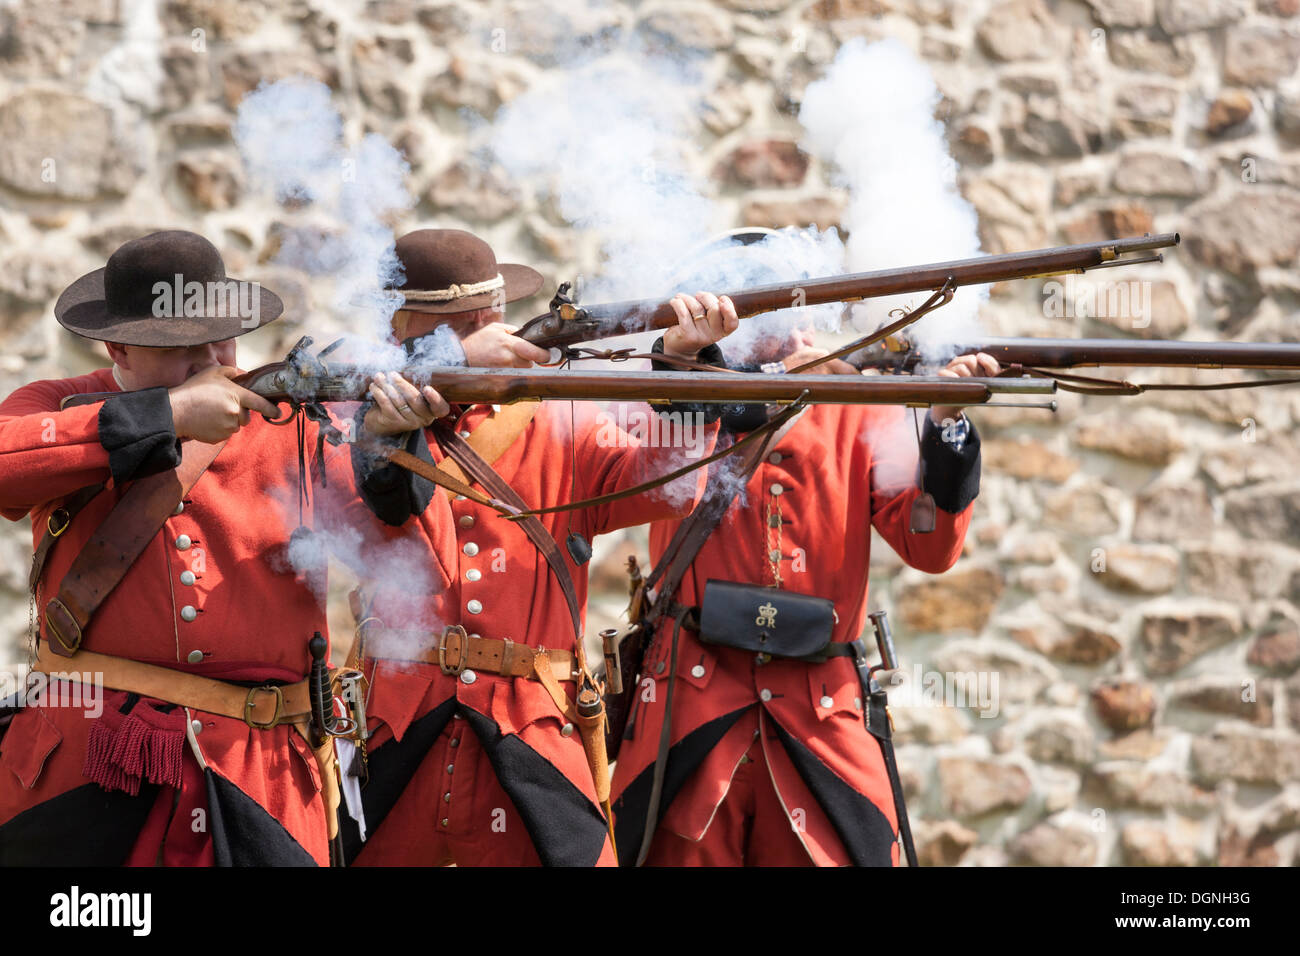 Soldiers firing flintlock muskets in re-enactment French & Indian American Revolution Revolutionary War of Independence - Stock Image